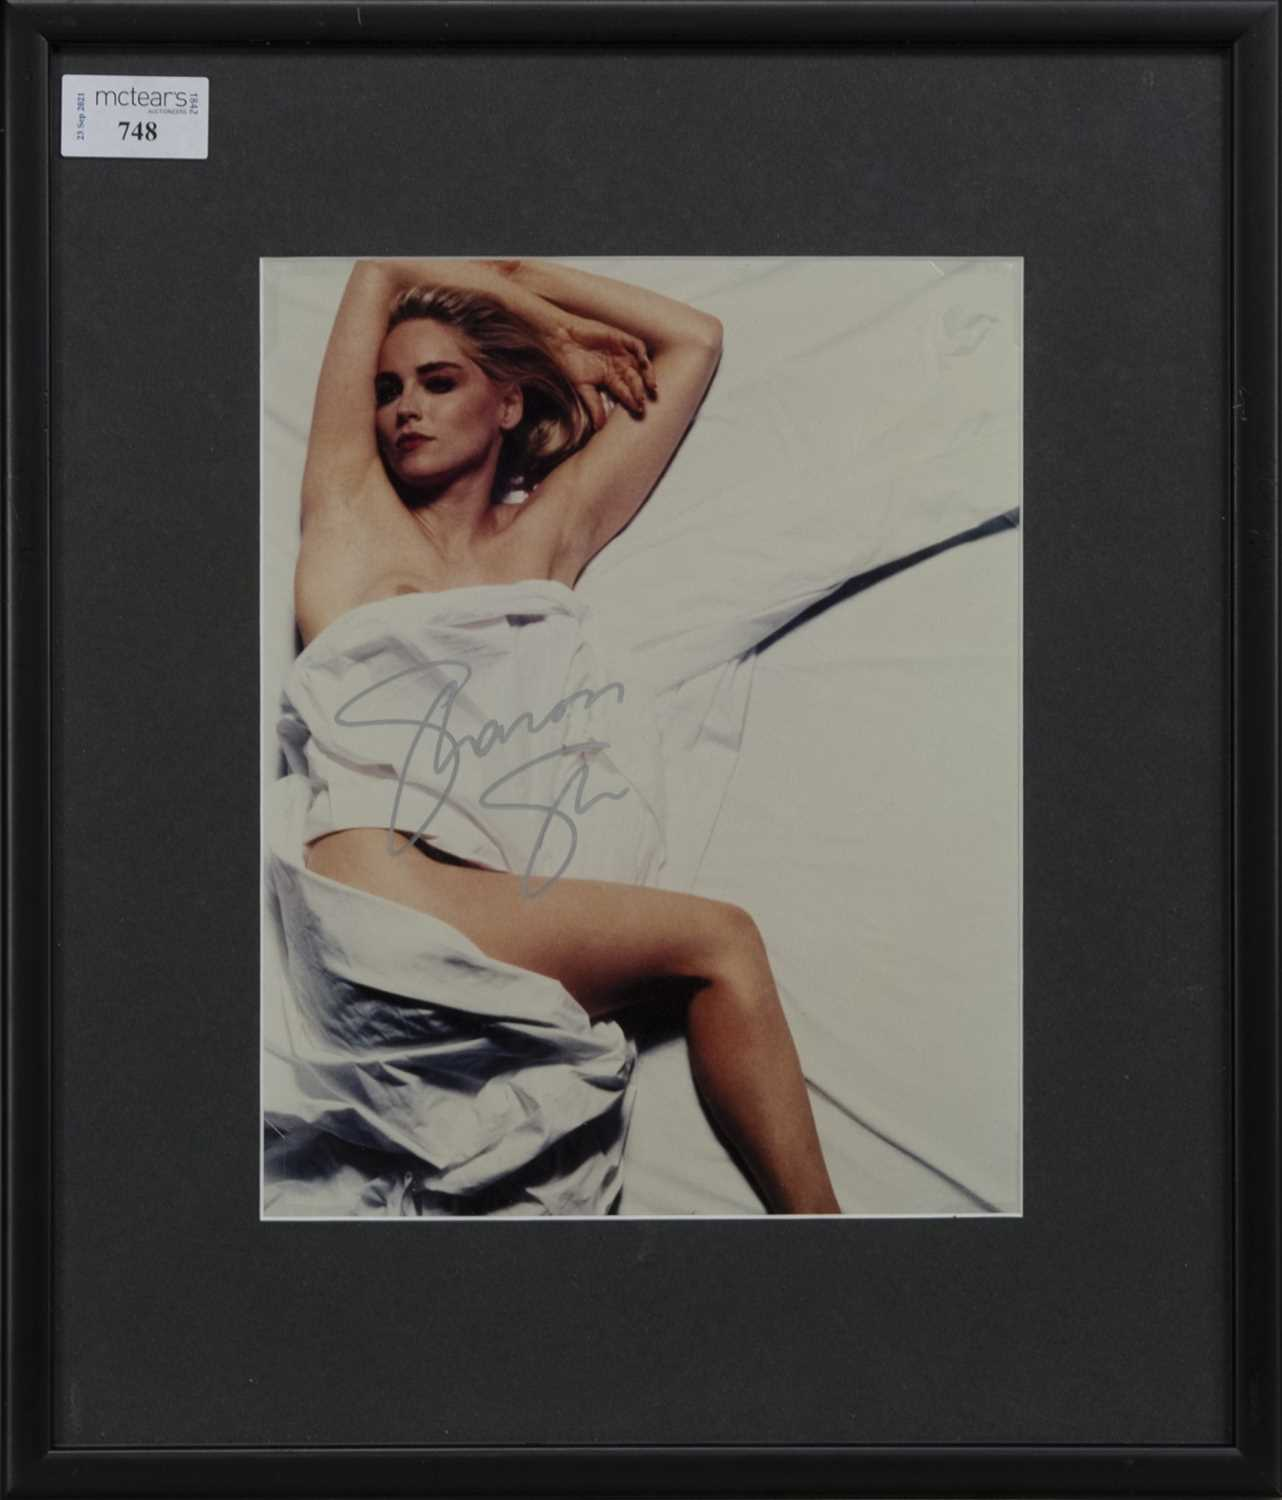 Lot 748 - A PHOTOGRAPH OF SHARON STONE